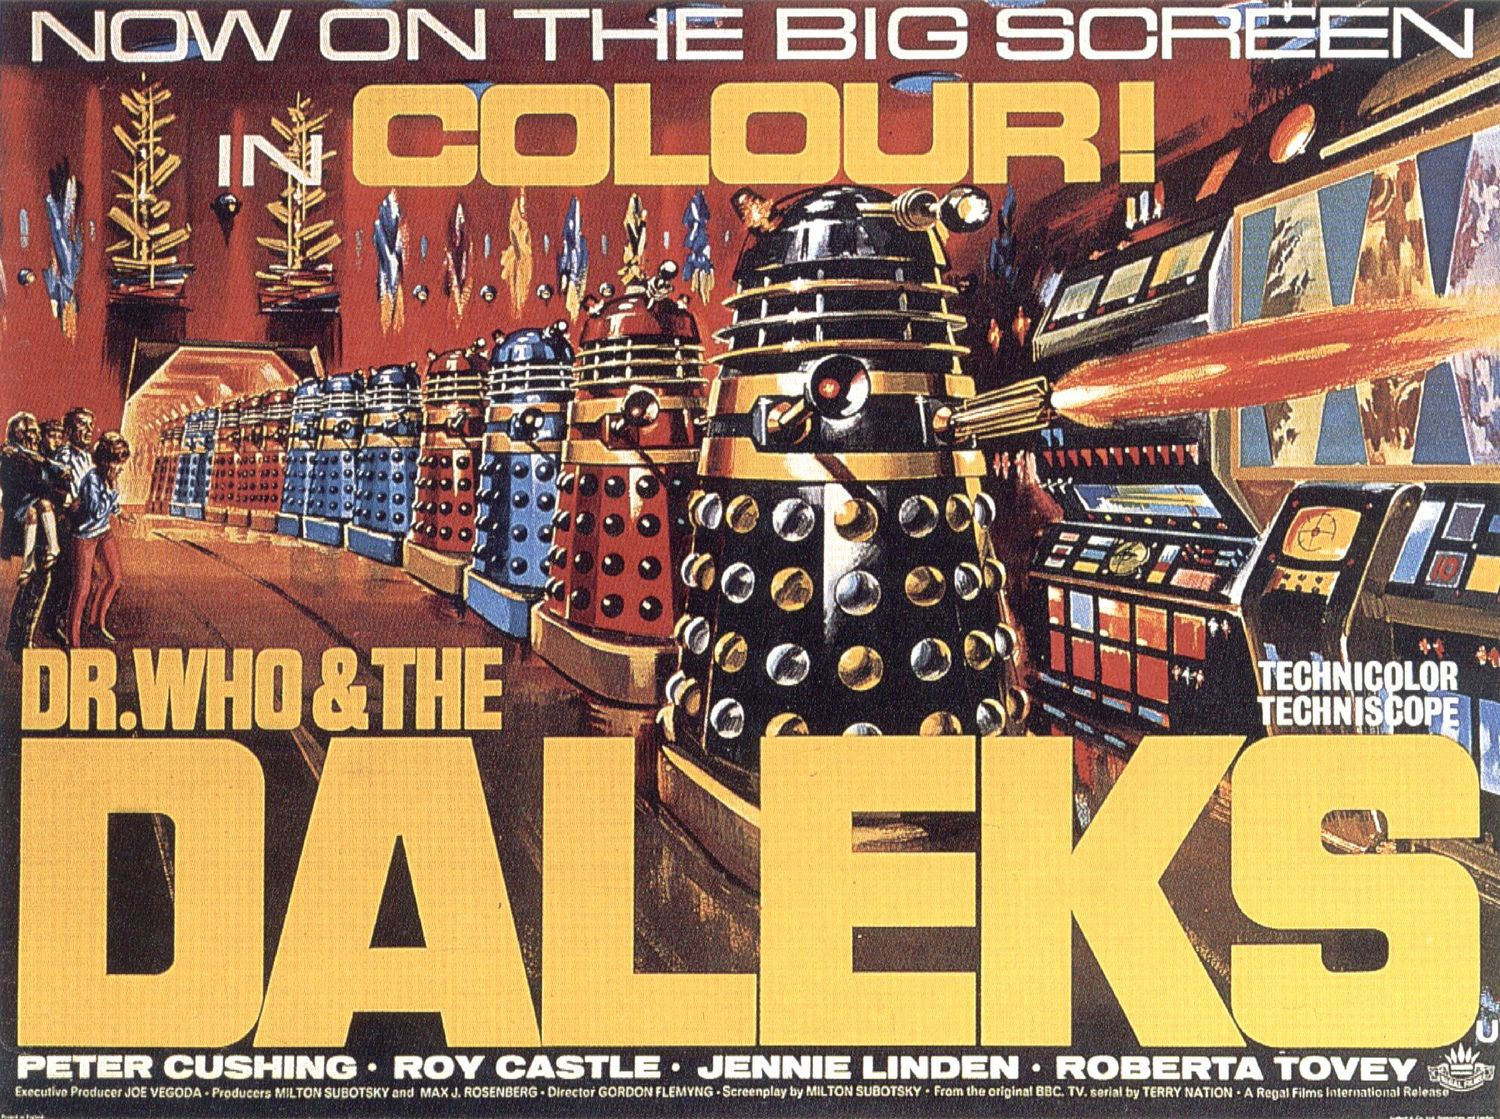 Dr Who and the Daleks - film 1966 - Peter Cushing - Roy Castle - Jennie Linden - Roberta Tovey - old classic poster